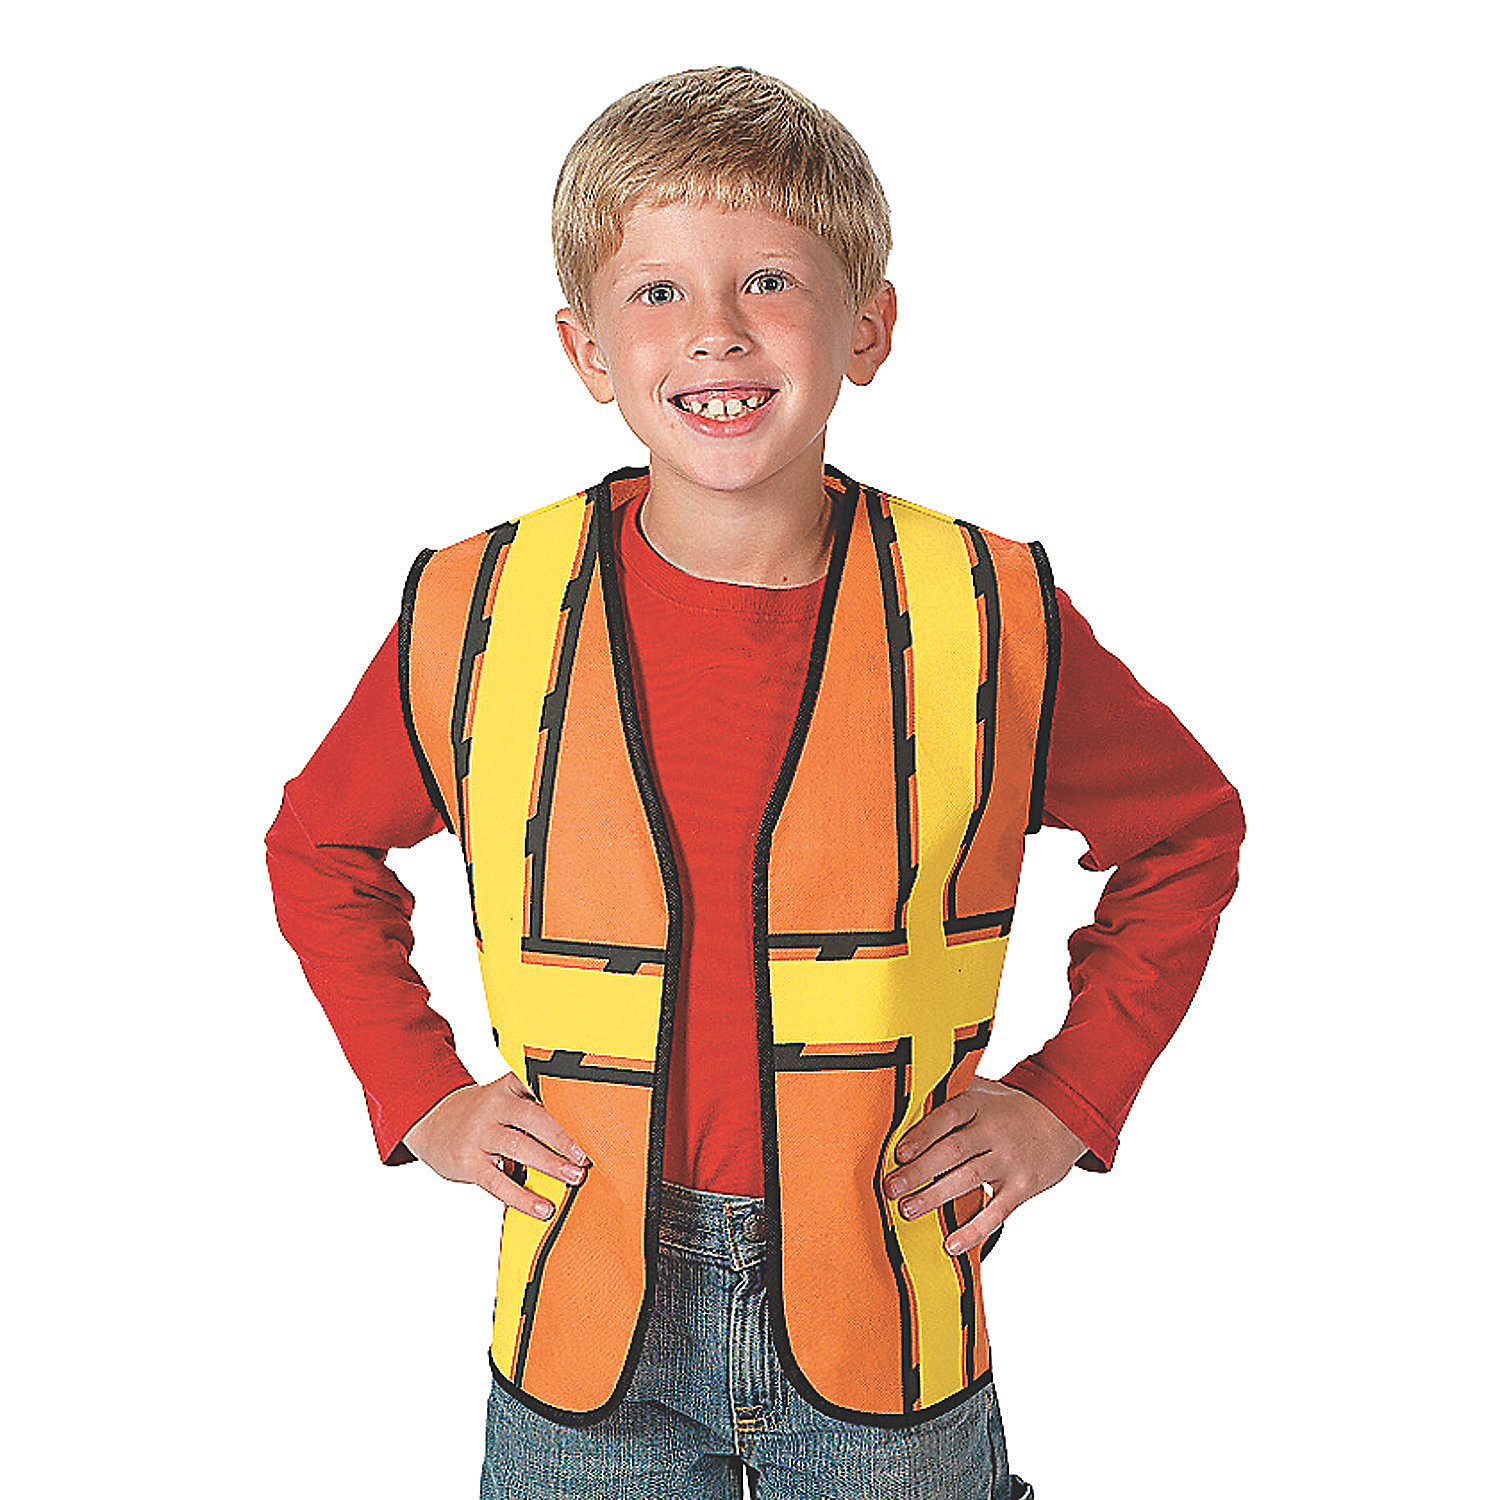 Find great deals on eBay for kids construction costume. Shop with confidence.